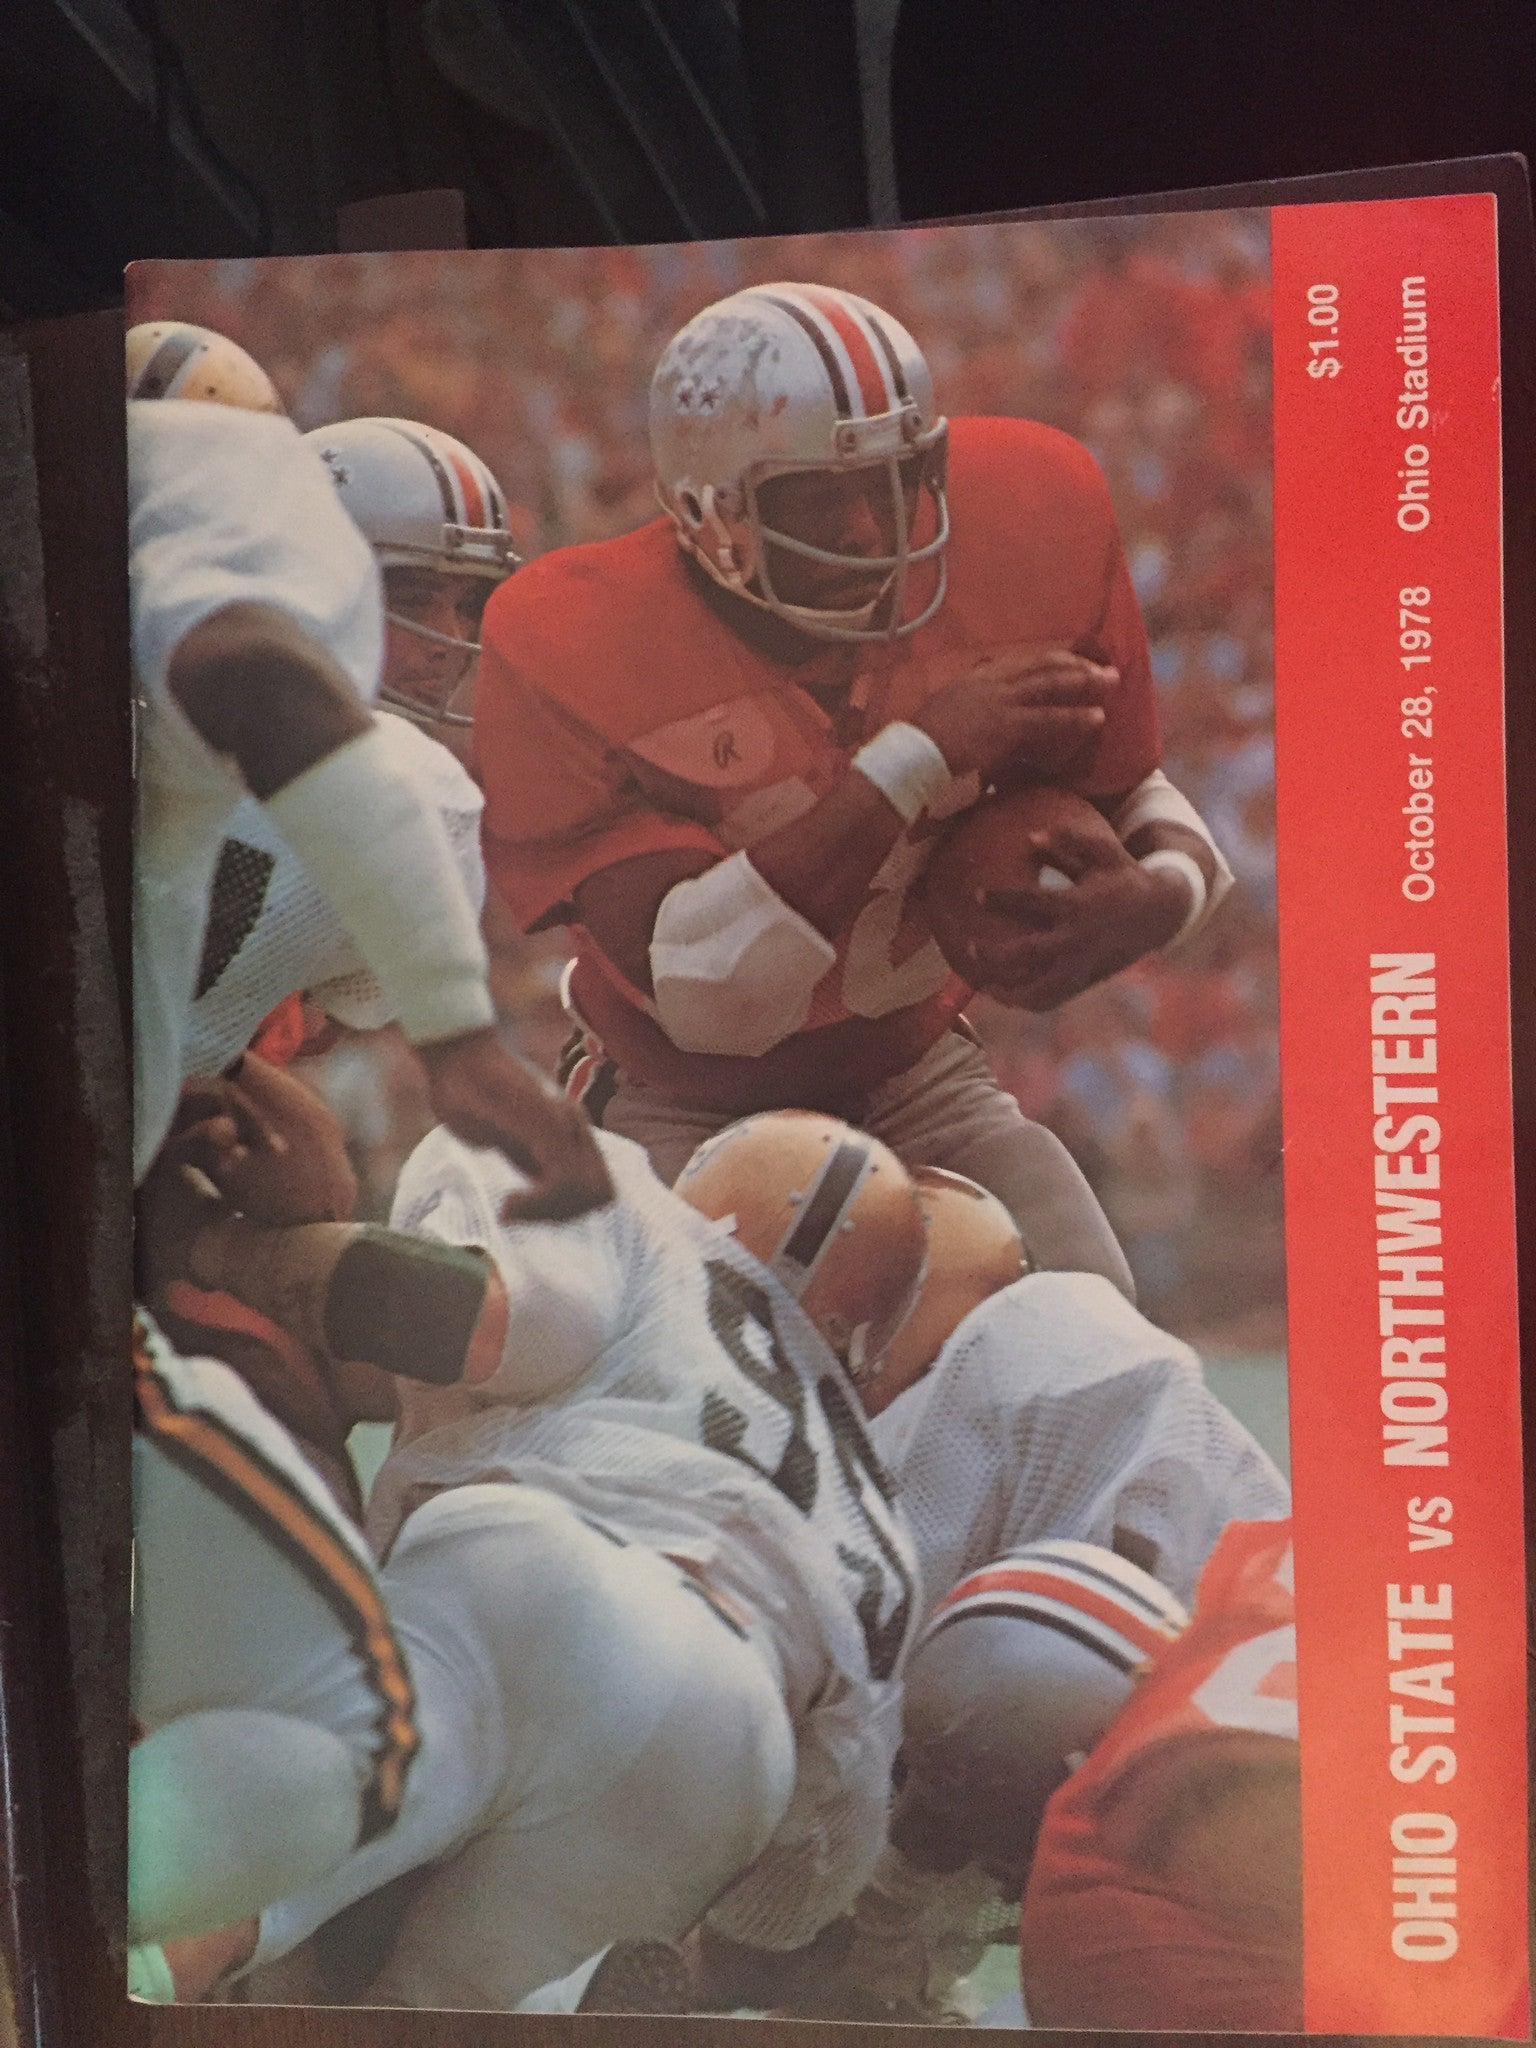 1978 Ohio State vs Northwestern Football Progam - Vintage Indy Sports